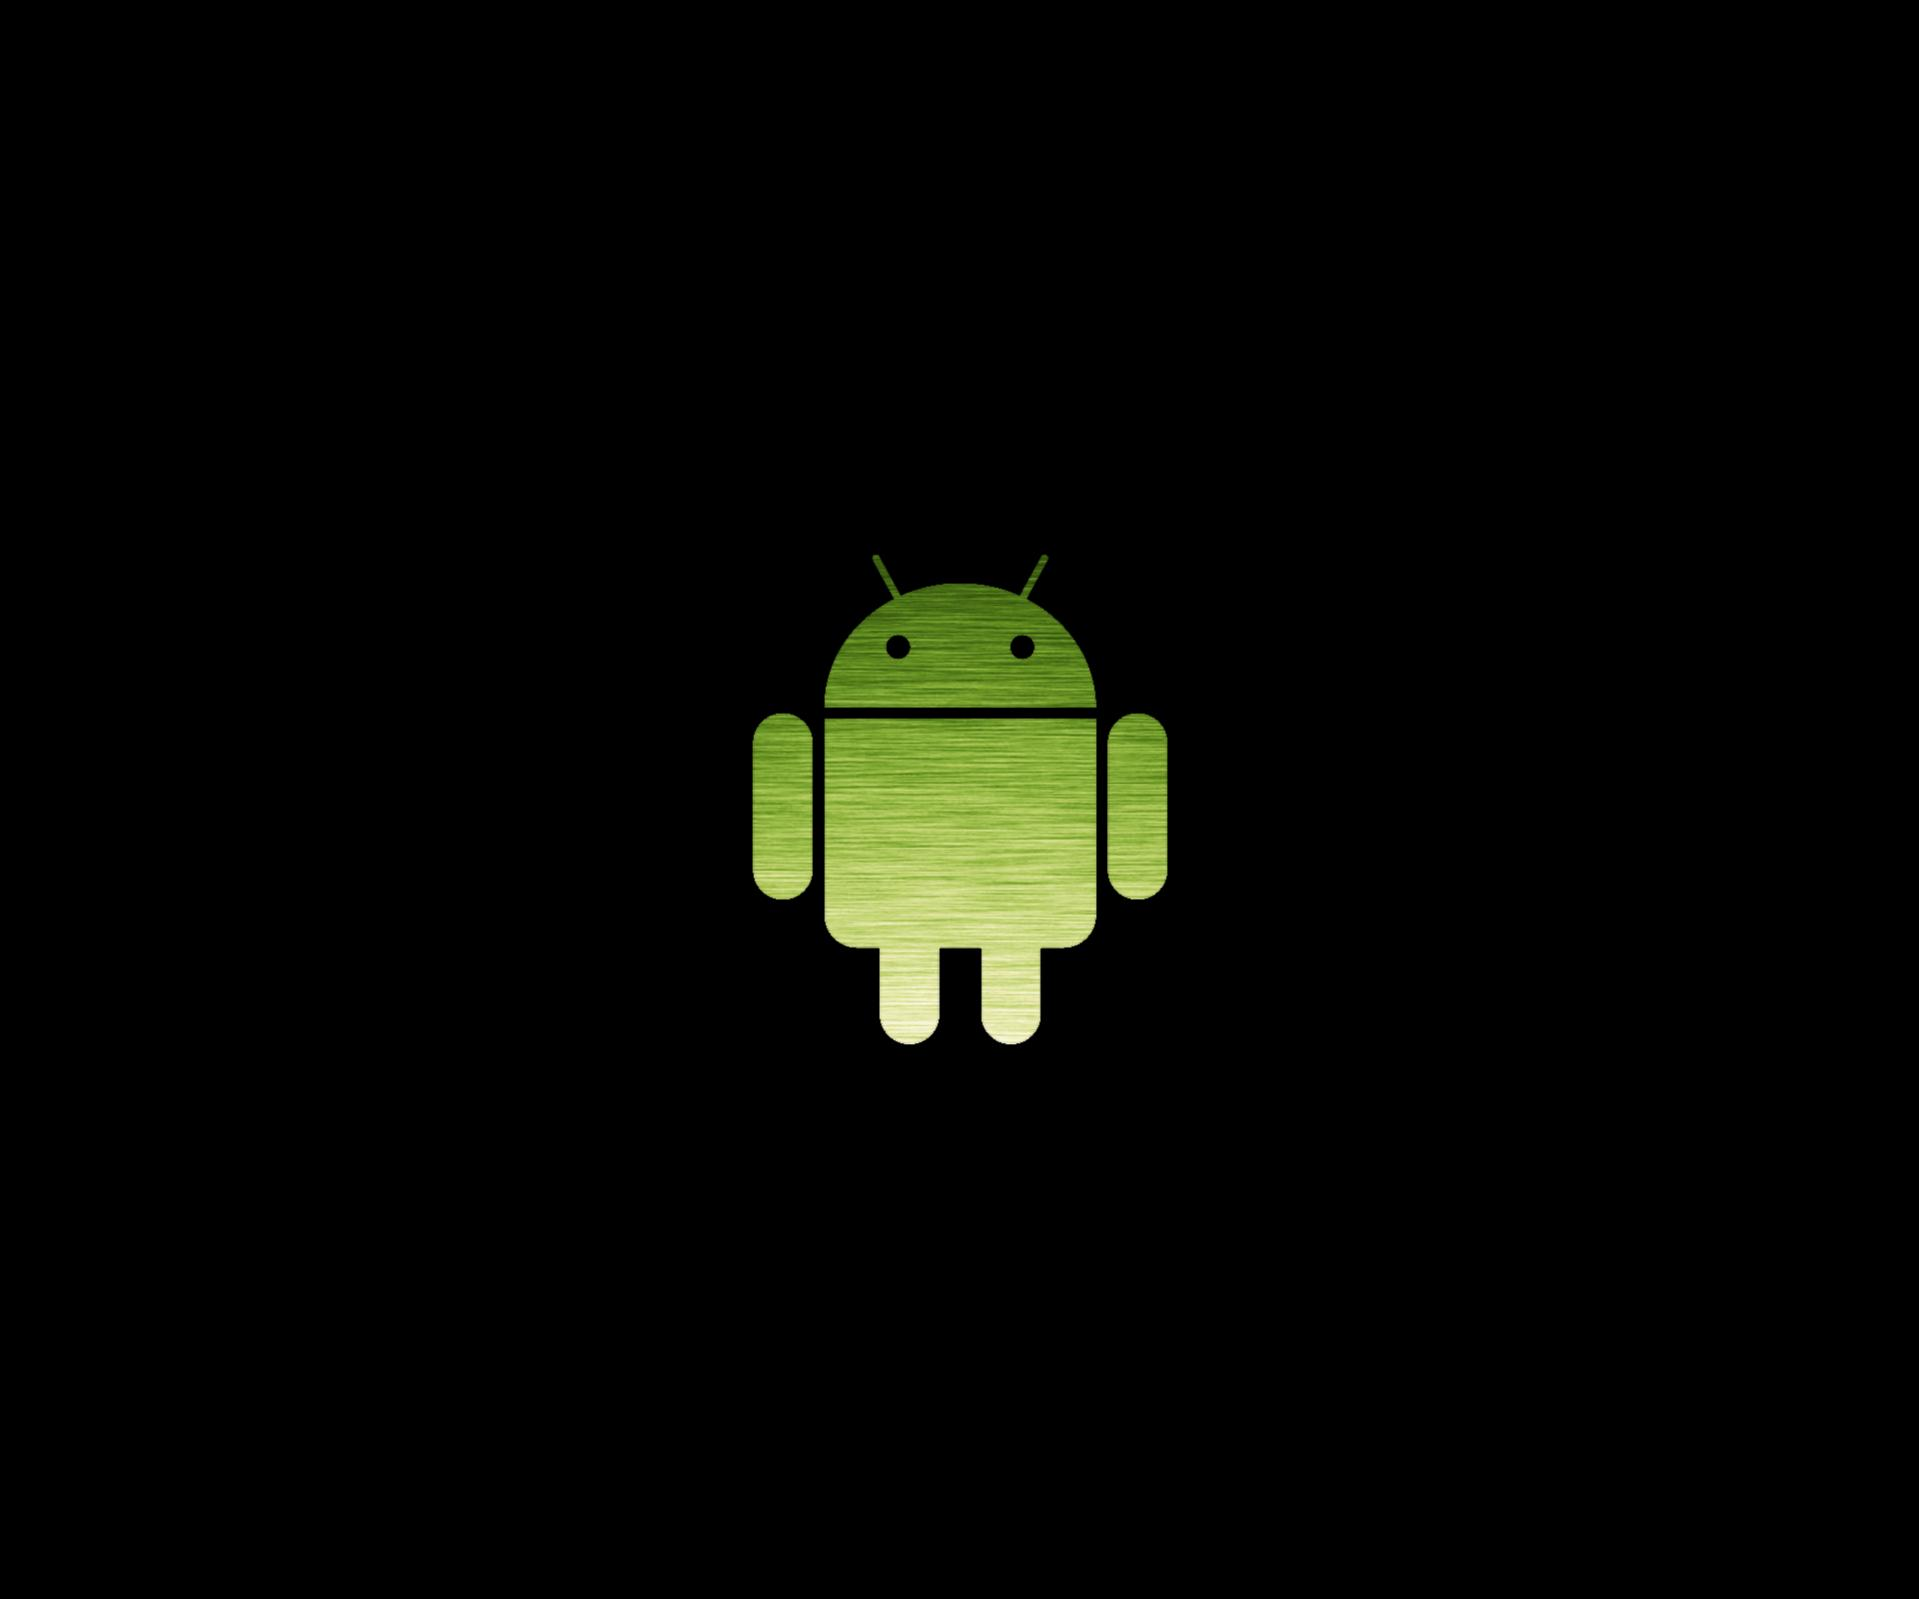 Black Wallpapers For Android - Wallpaper Cave